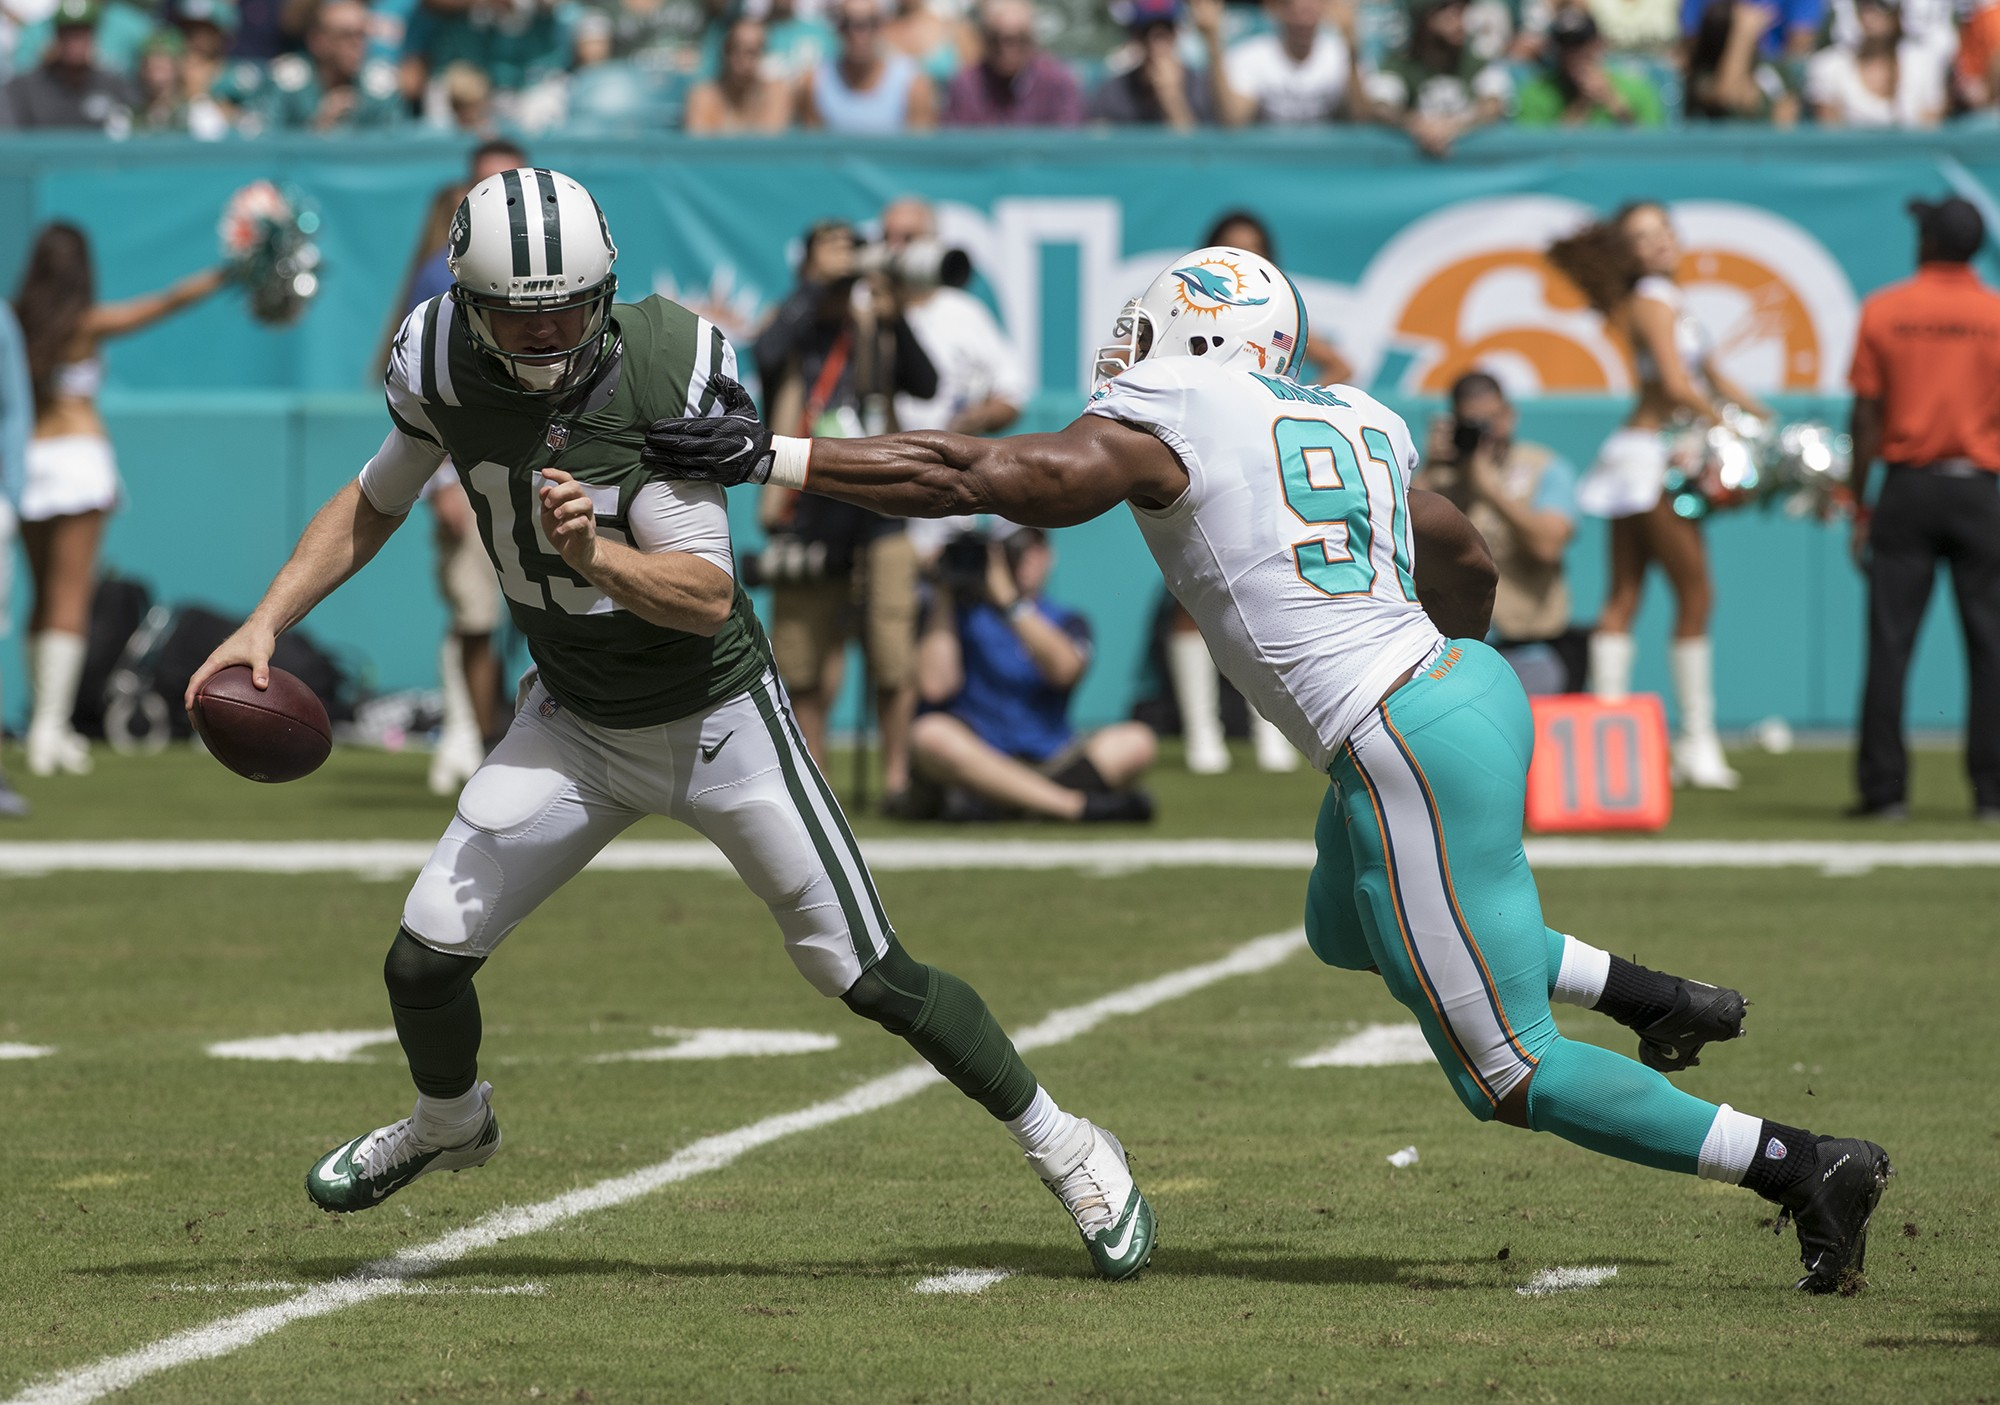 Miami Dolphins defensive end Cameron Wake (91) wraps up New York Jets quarterback Josh McCown (15) during 1st half play of an NFL football game on Sunday, Oct. 22, 2017, in Miami Gardens, Fla. The Miami Dolphins went on to defeat the New York Jets 28-31.(Donald Edgar/El Latino Digital)